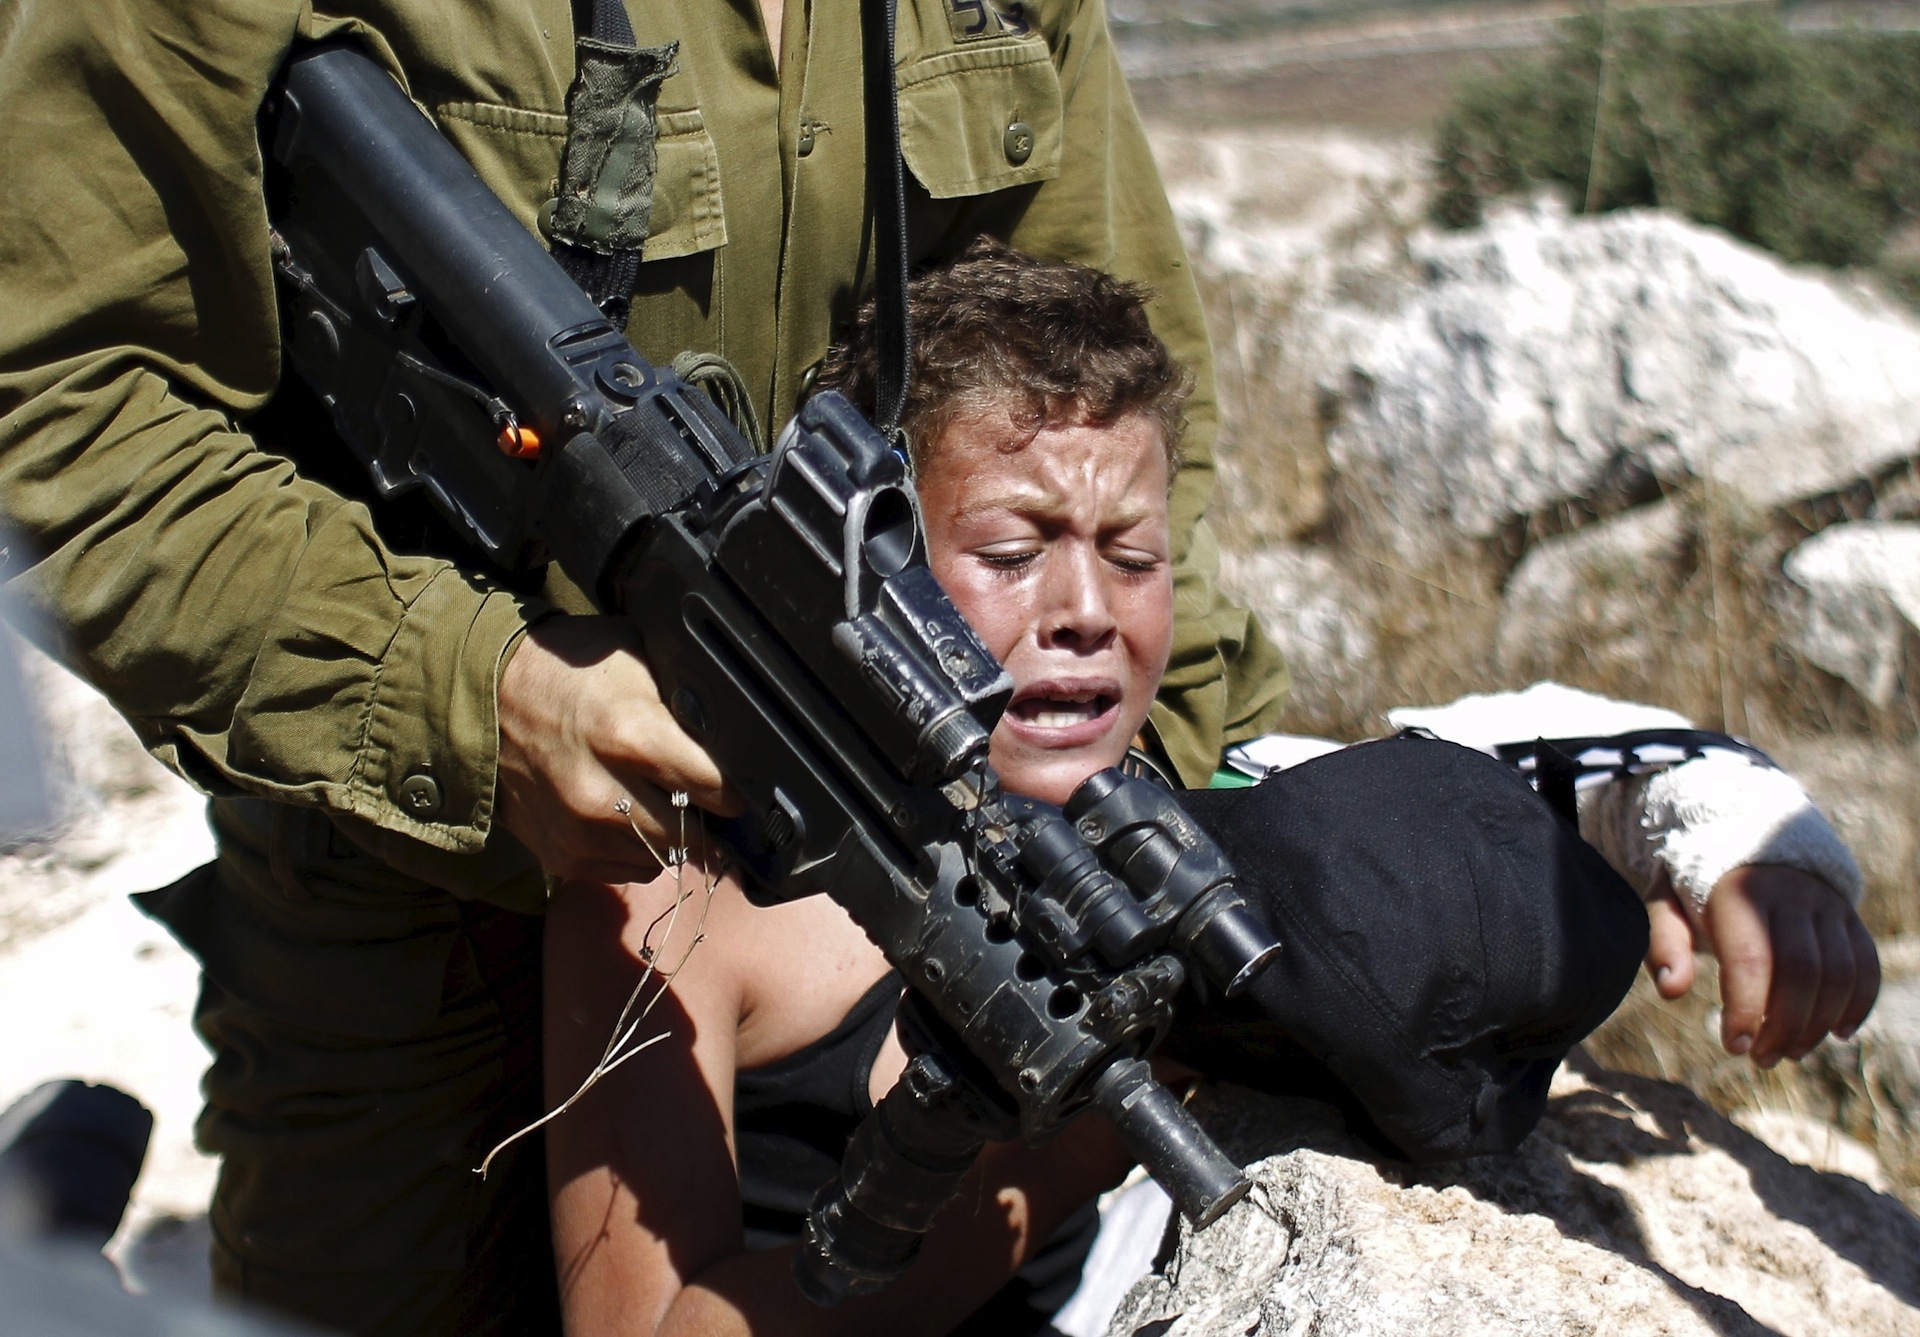 This viral video of an Israeli soldier trying to arrest a Palestinian boy says a lot - The Washington Post